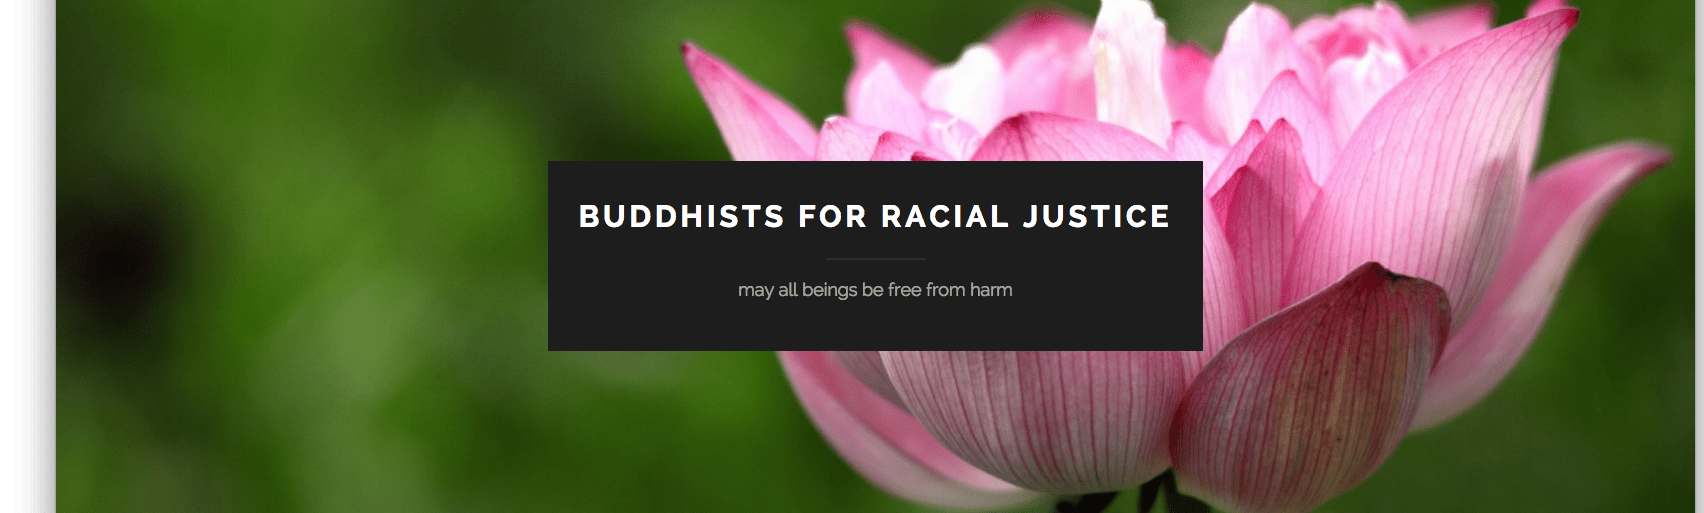 buddhists for racial justice, website, open letter, angel kyodo william, tara brach